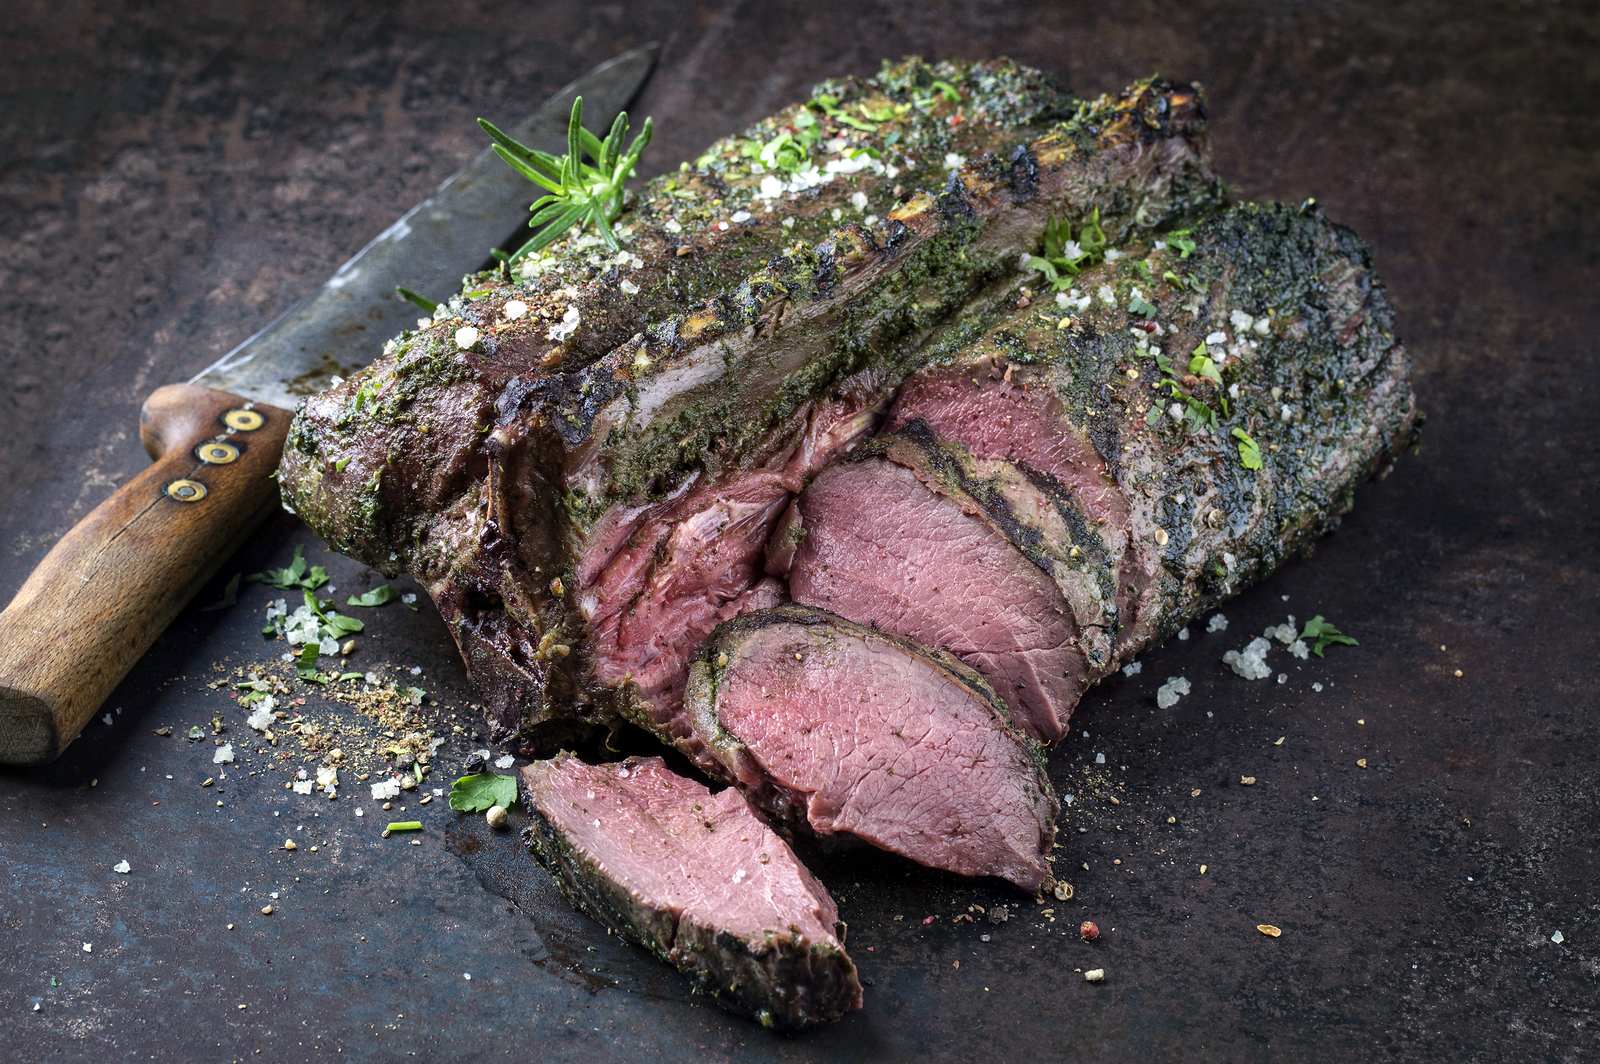 Venison is a very Scottish dish, normally found in top quality restaurants as the very best fresh Scottish produce